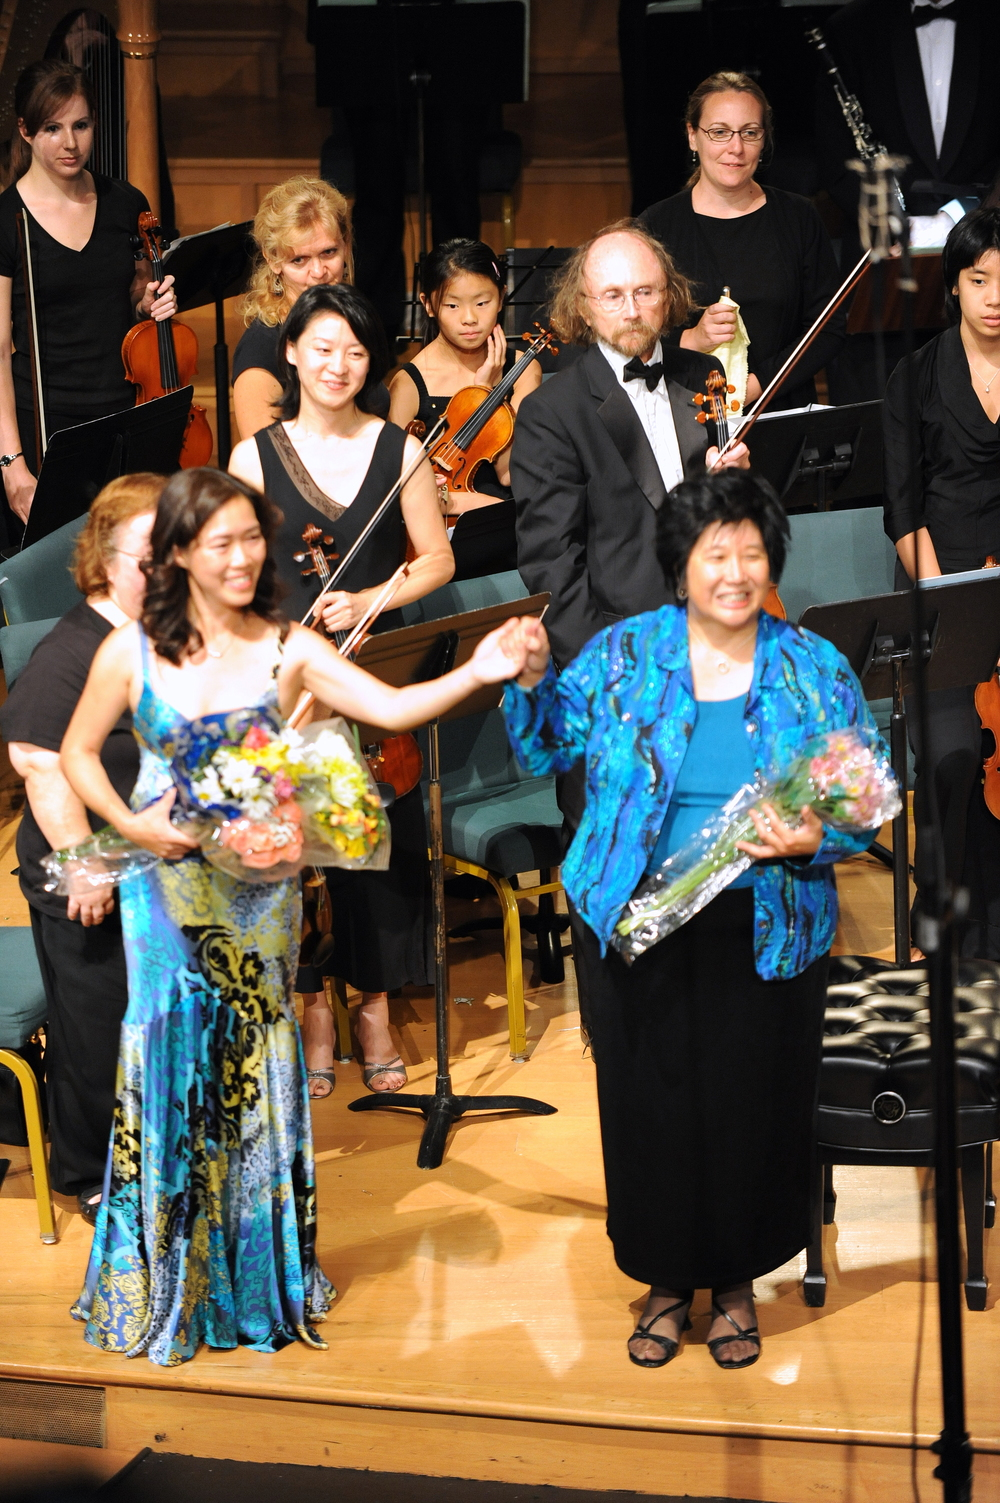 Curtain call following performance